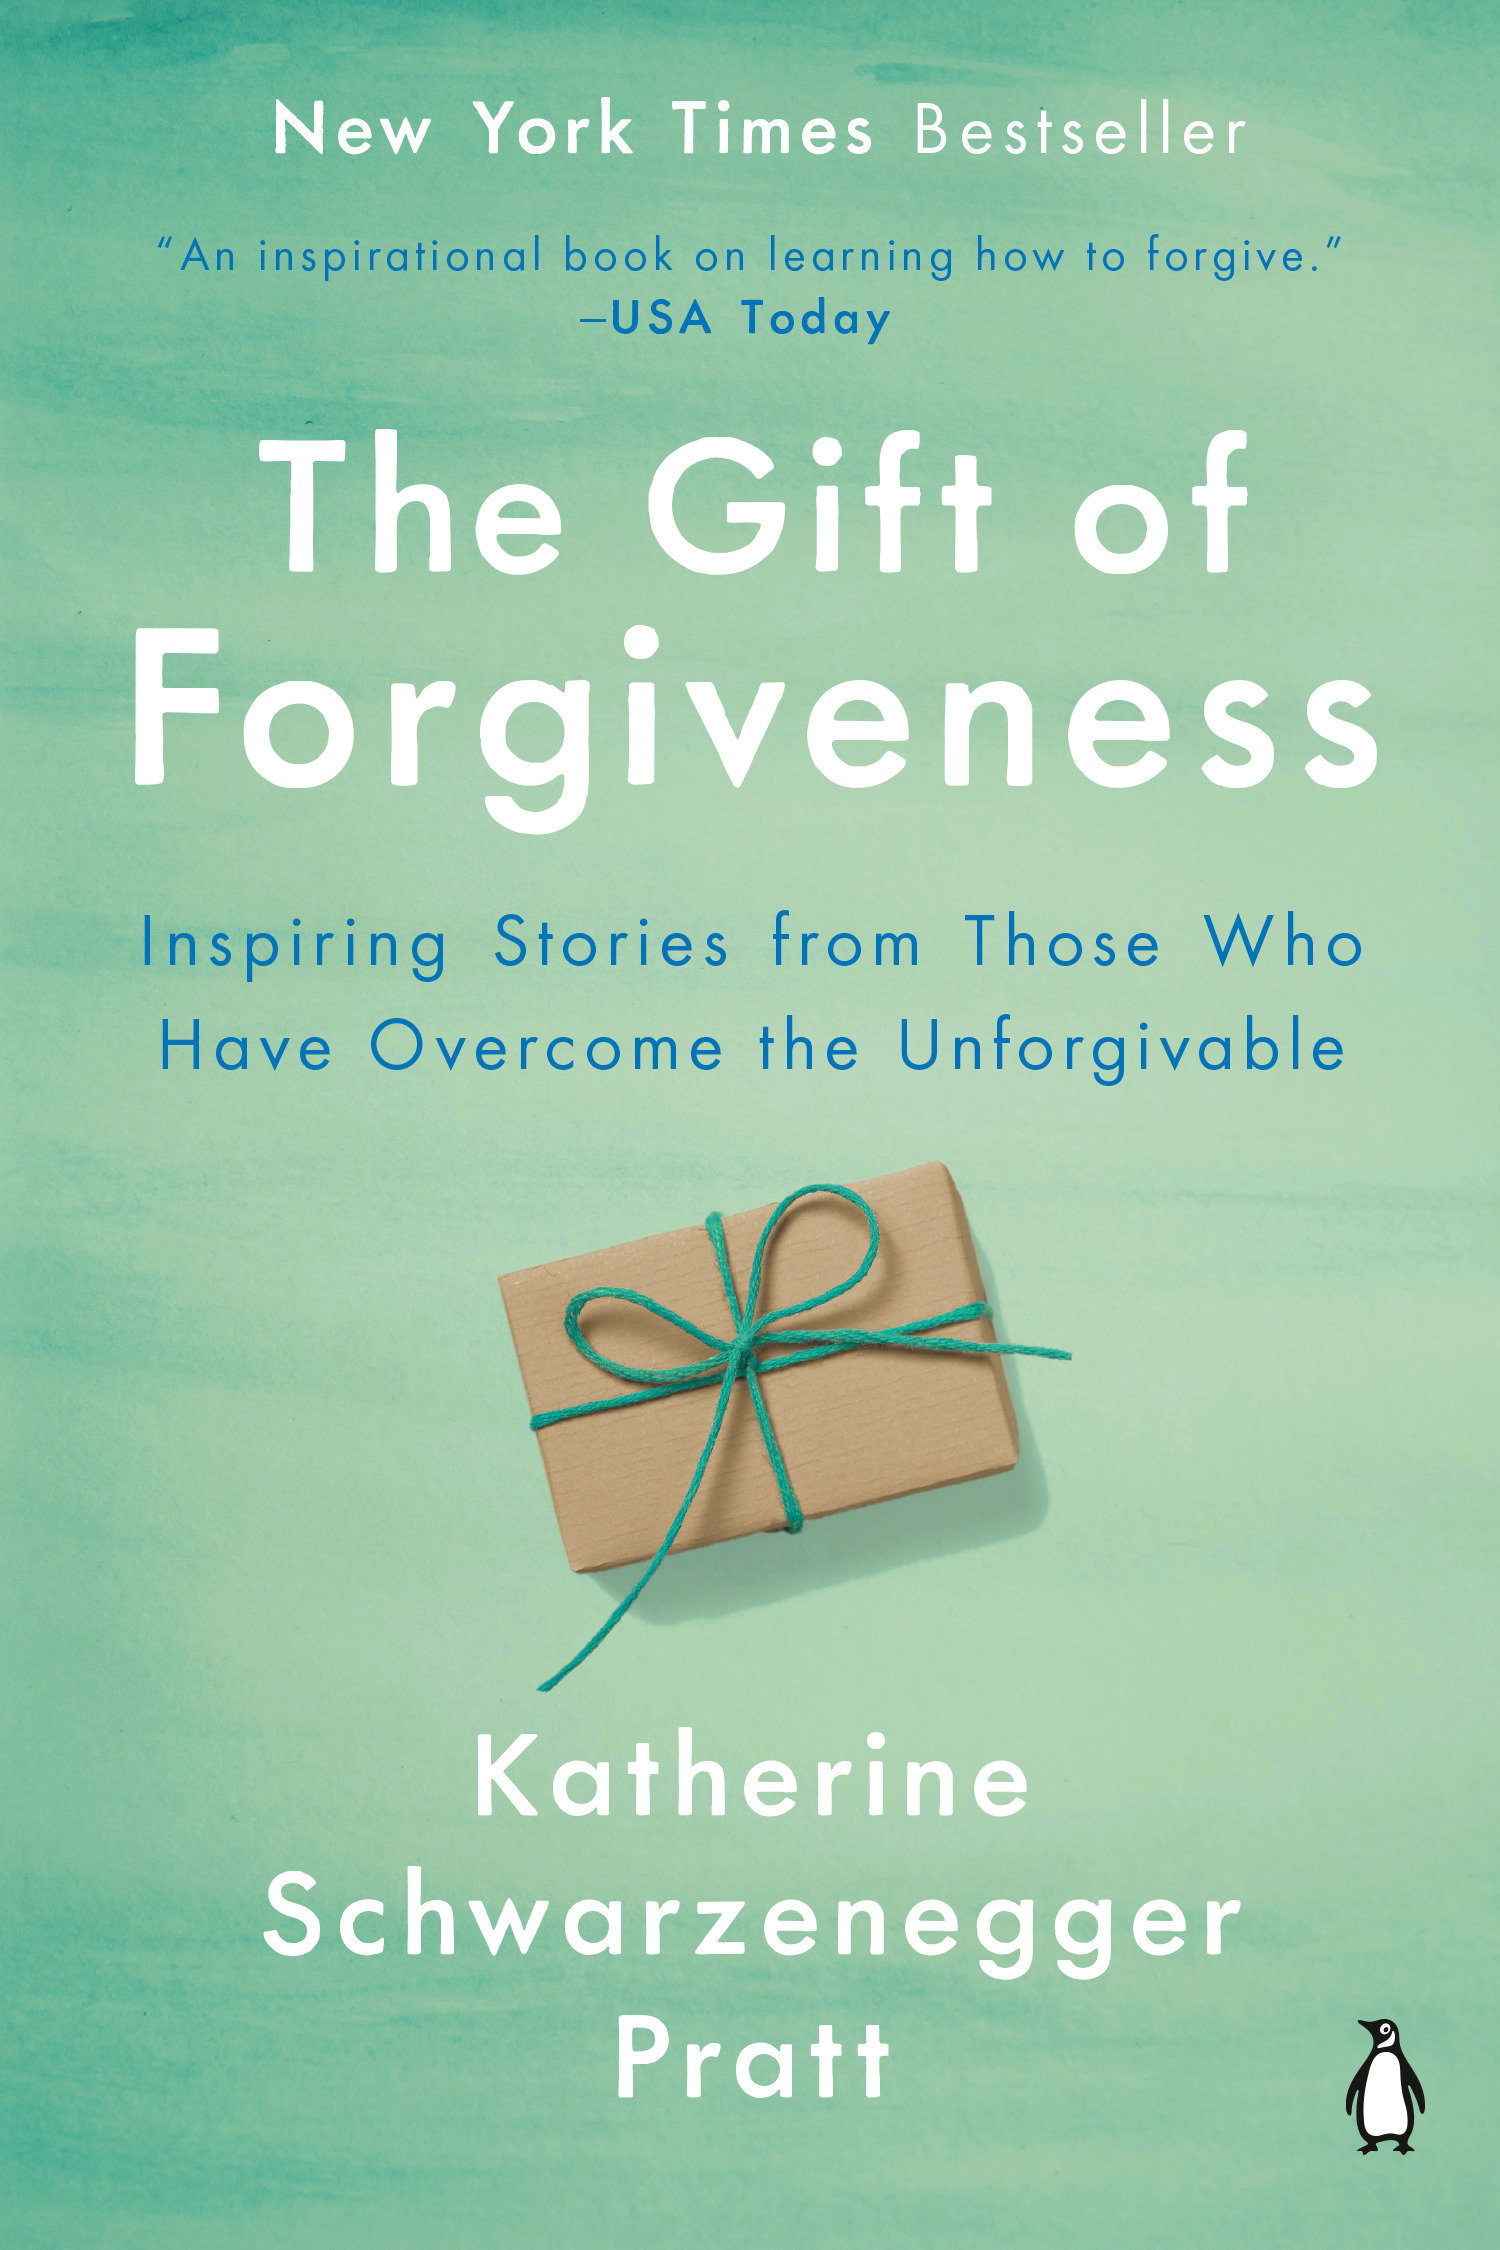 The gift of forgiveness [electronic resource (downloadable eBook)] : Inspiring Stories from Those Who Have Overcome the Unforgivable